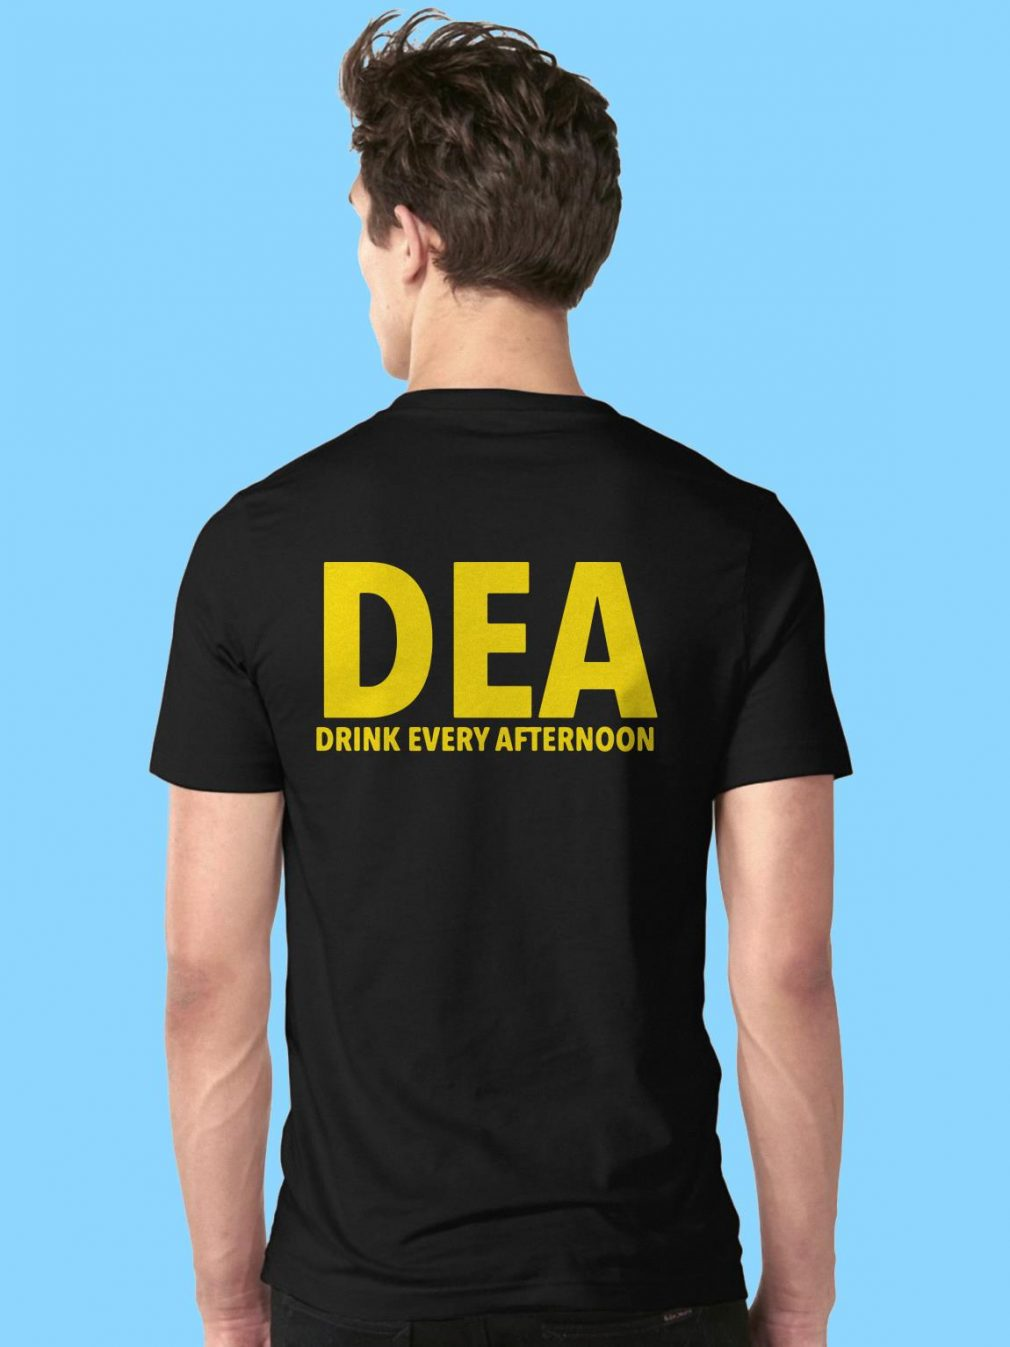 DEA drink every afternoon shirt